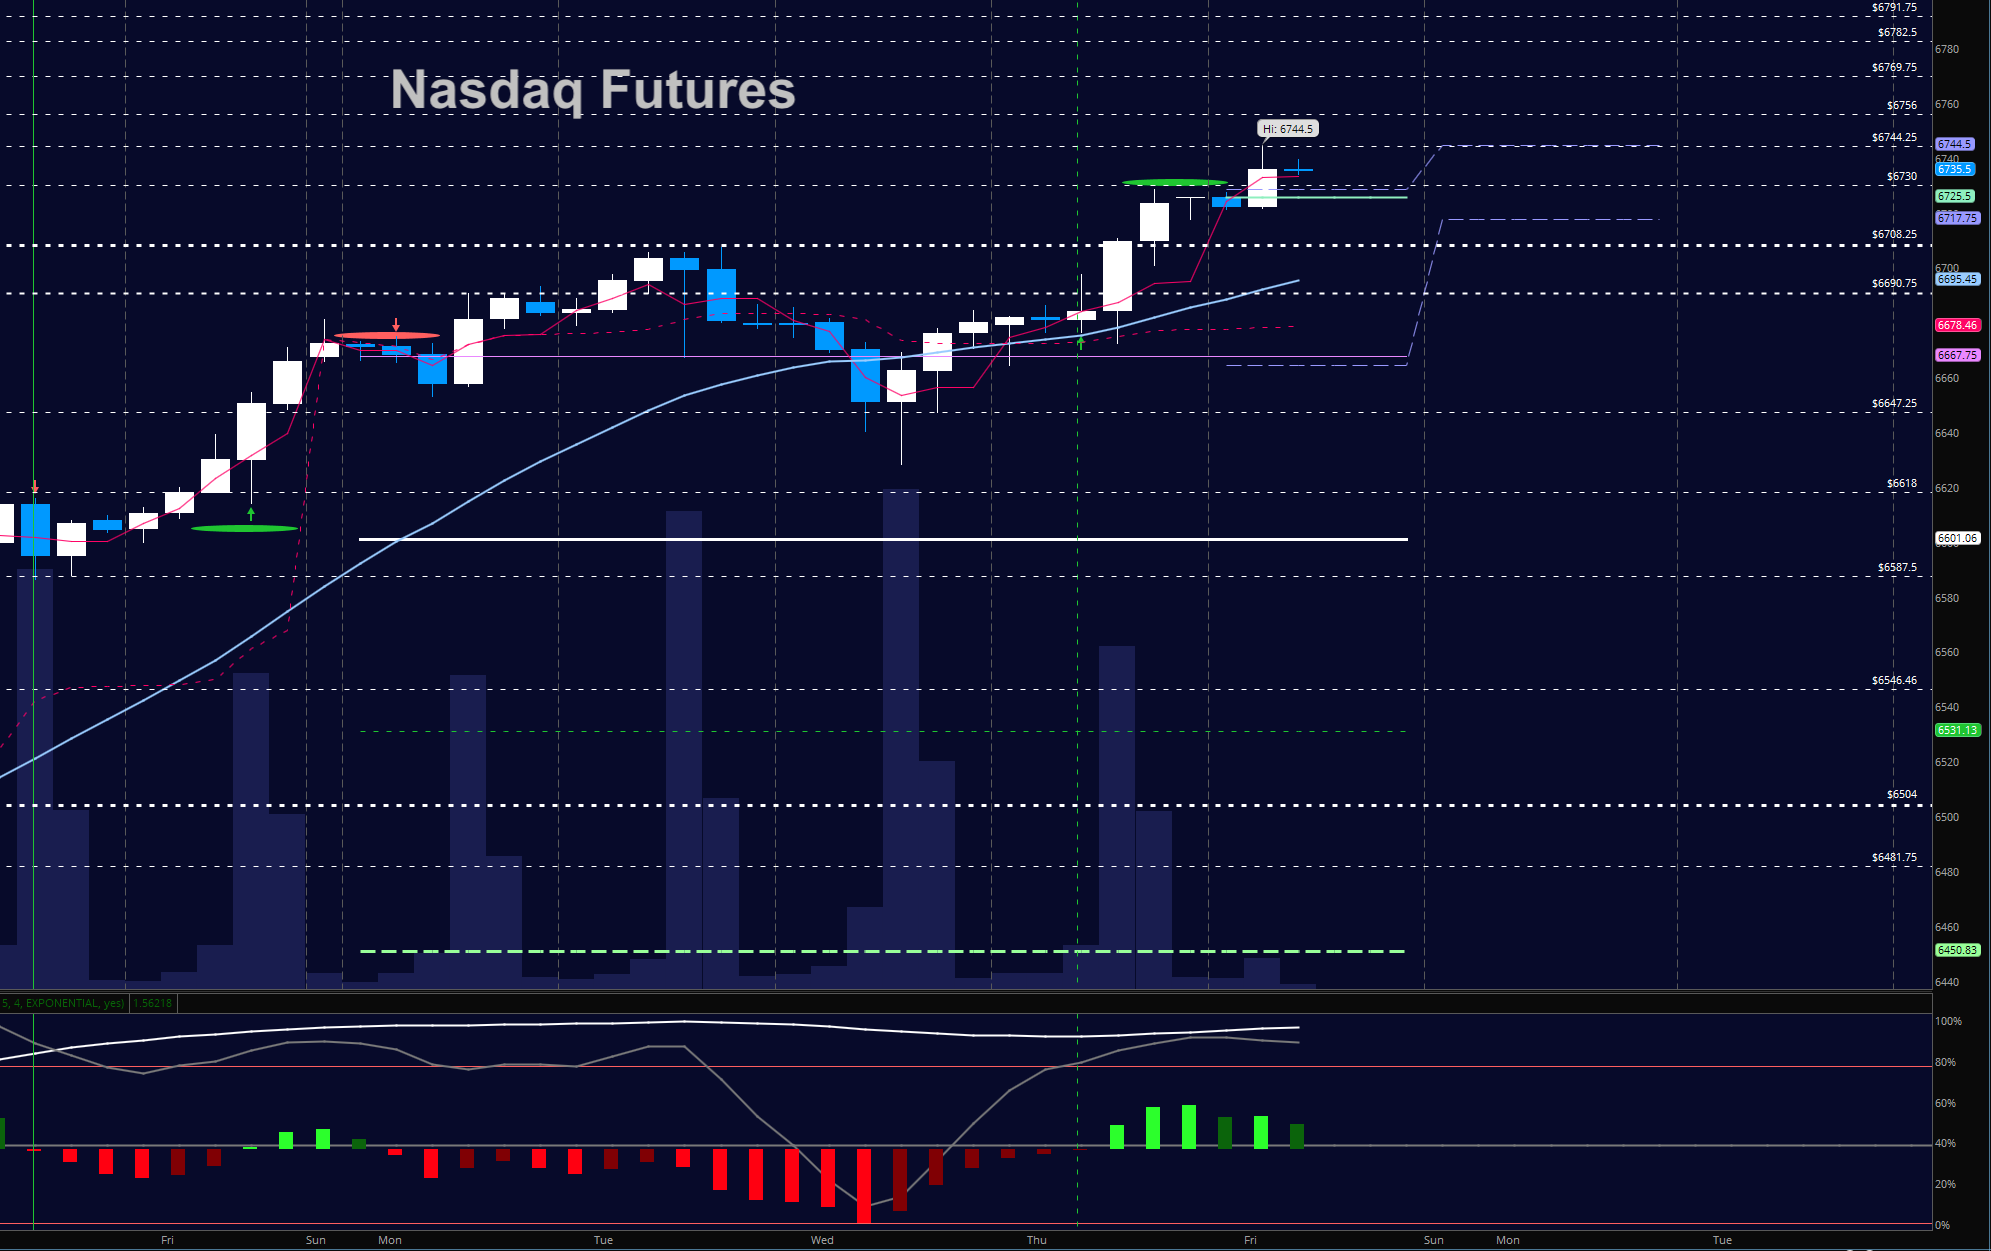 nasdaq futures january 12 trading chart new highs news